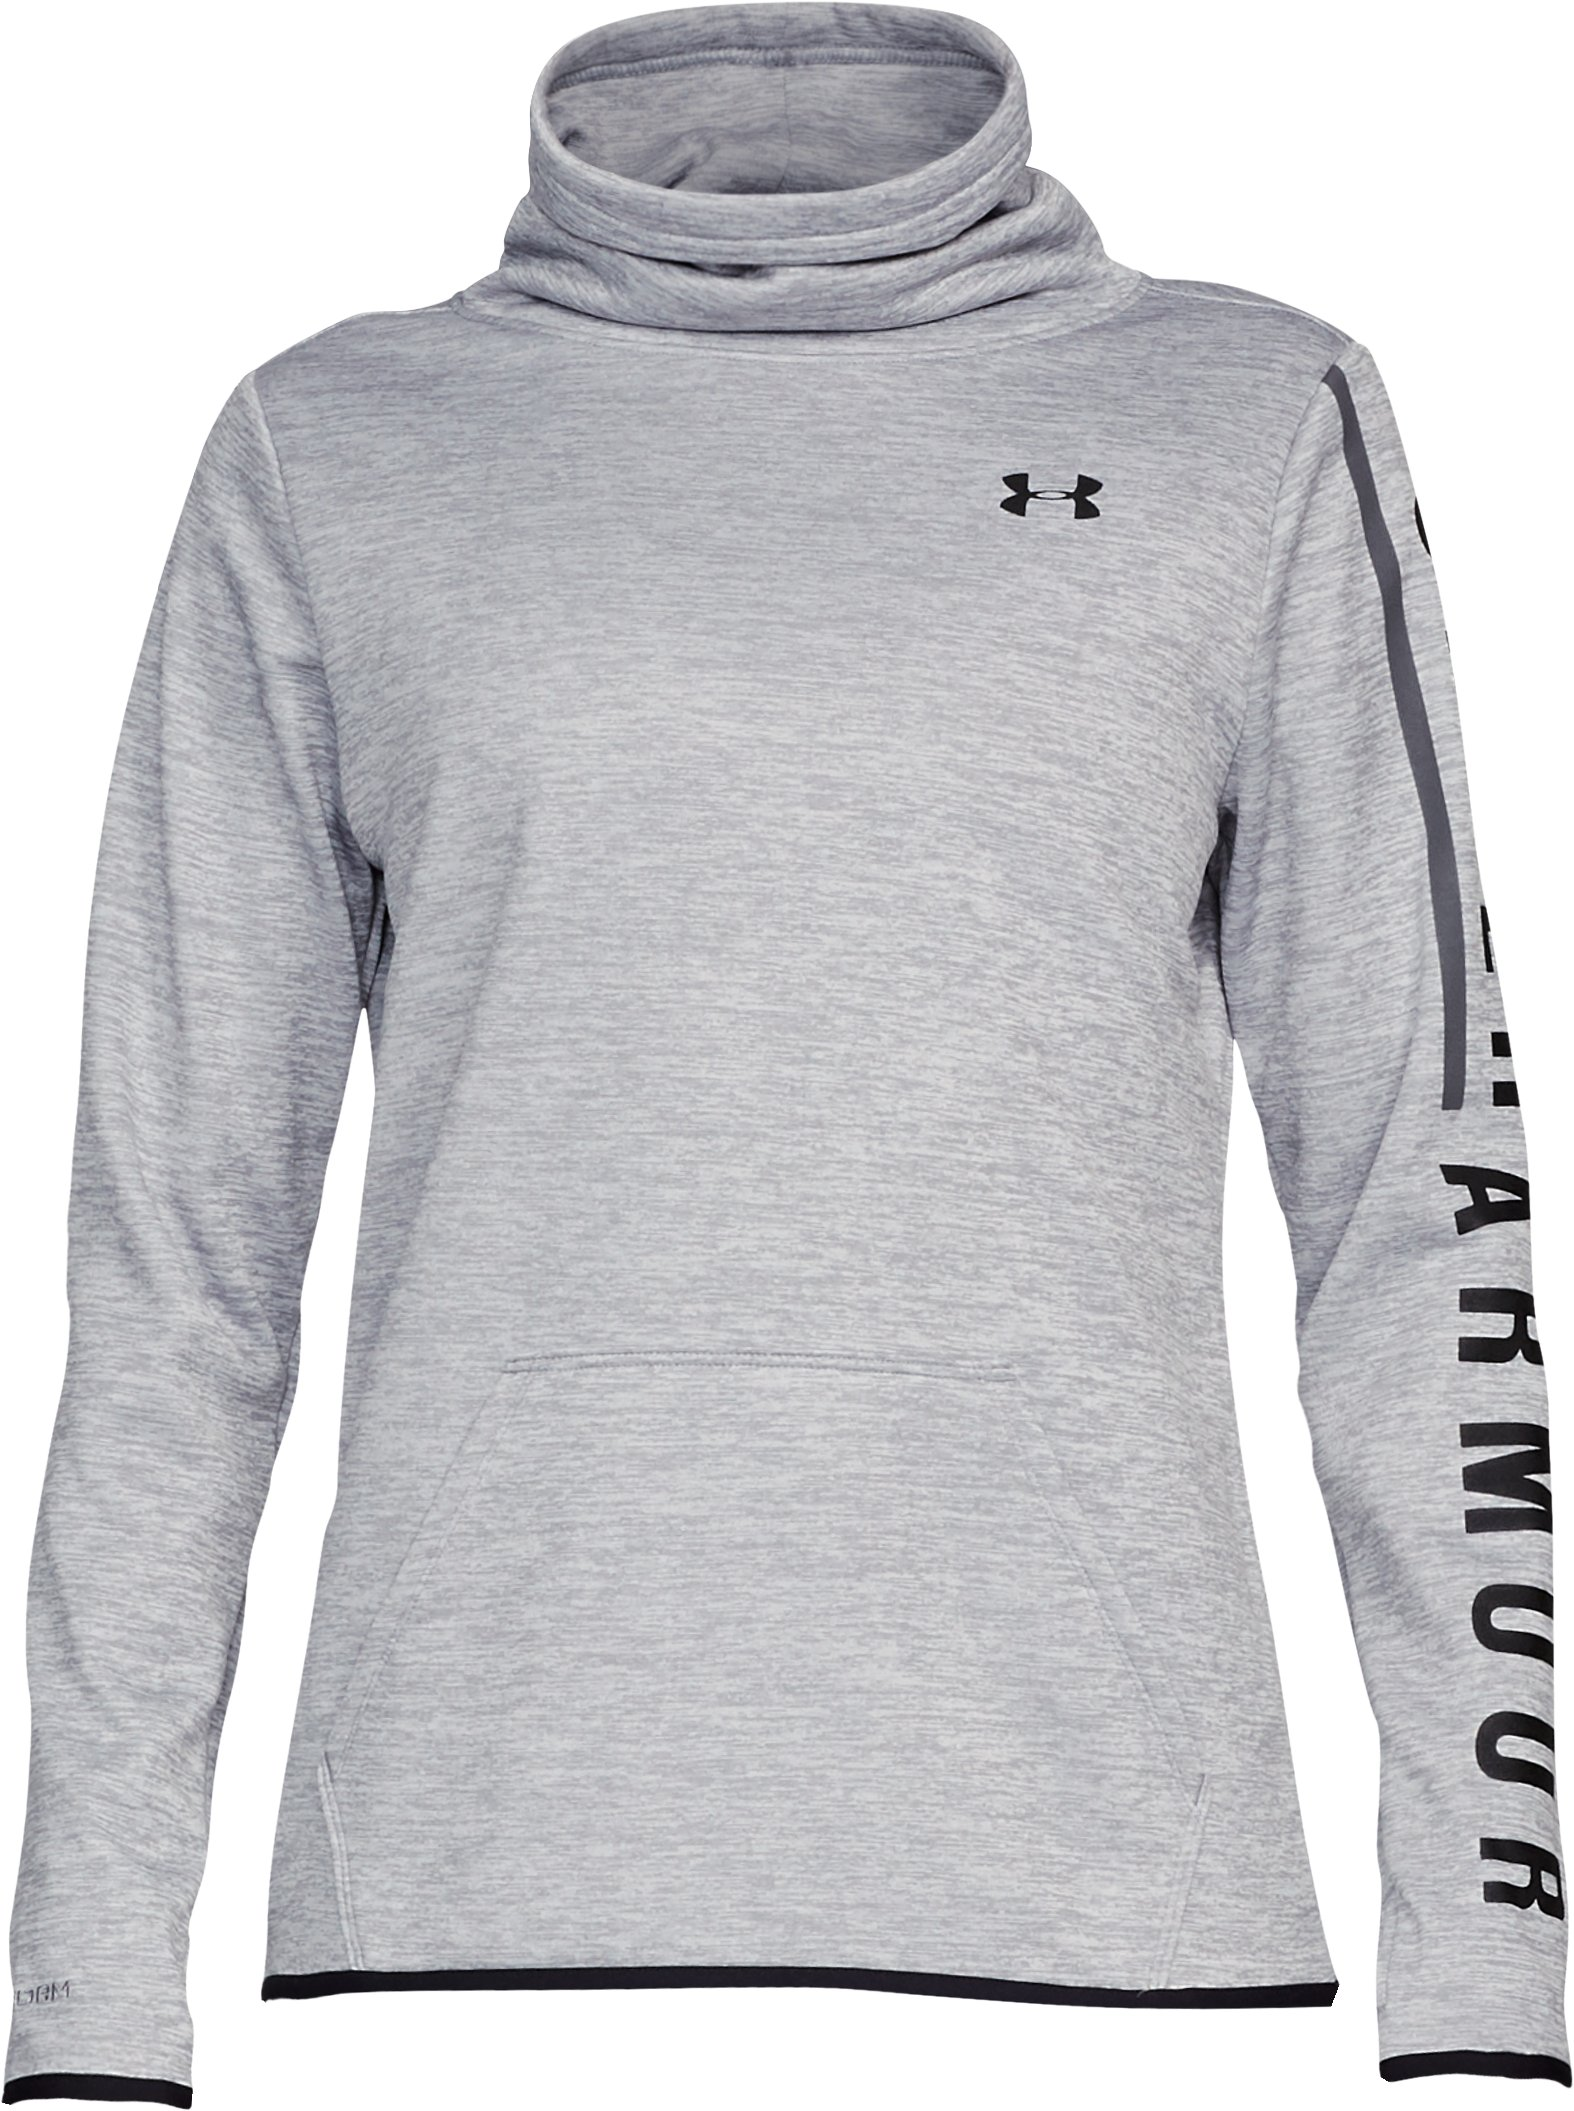 Women's Armour Fleece® Graphic Twist Pullover, Steel,